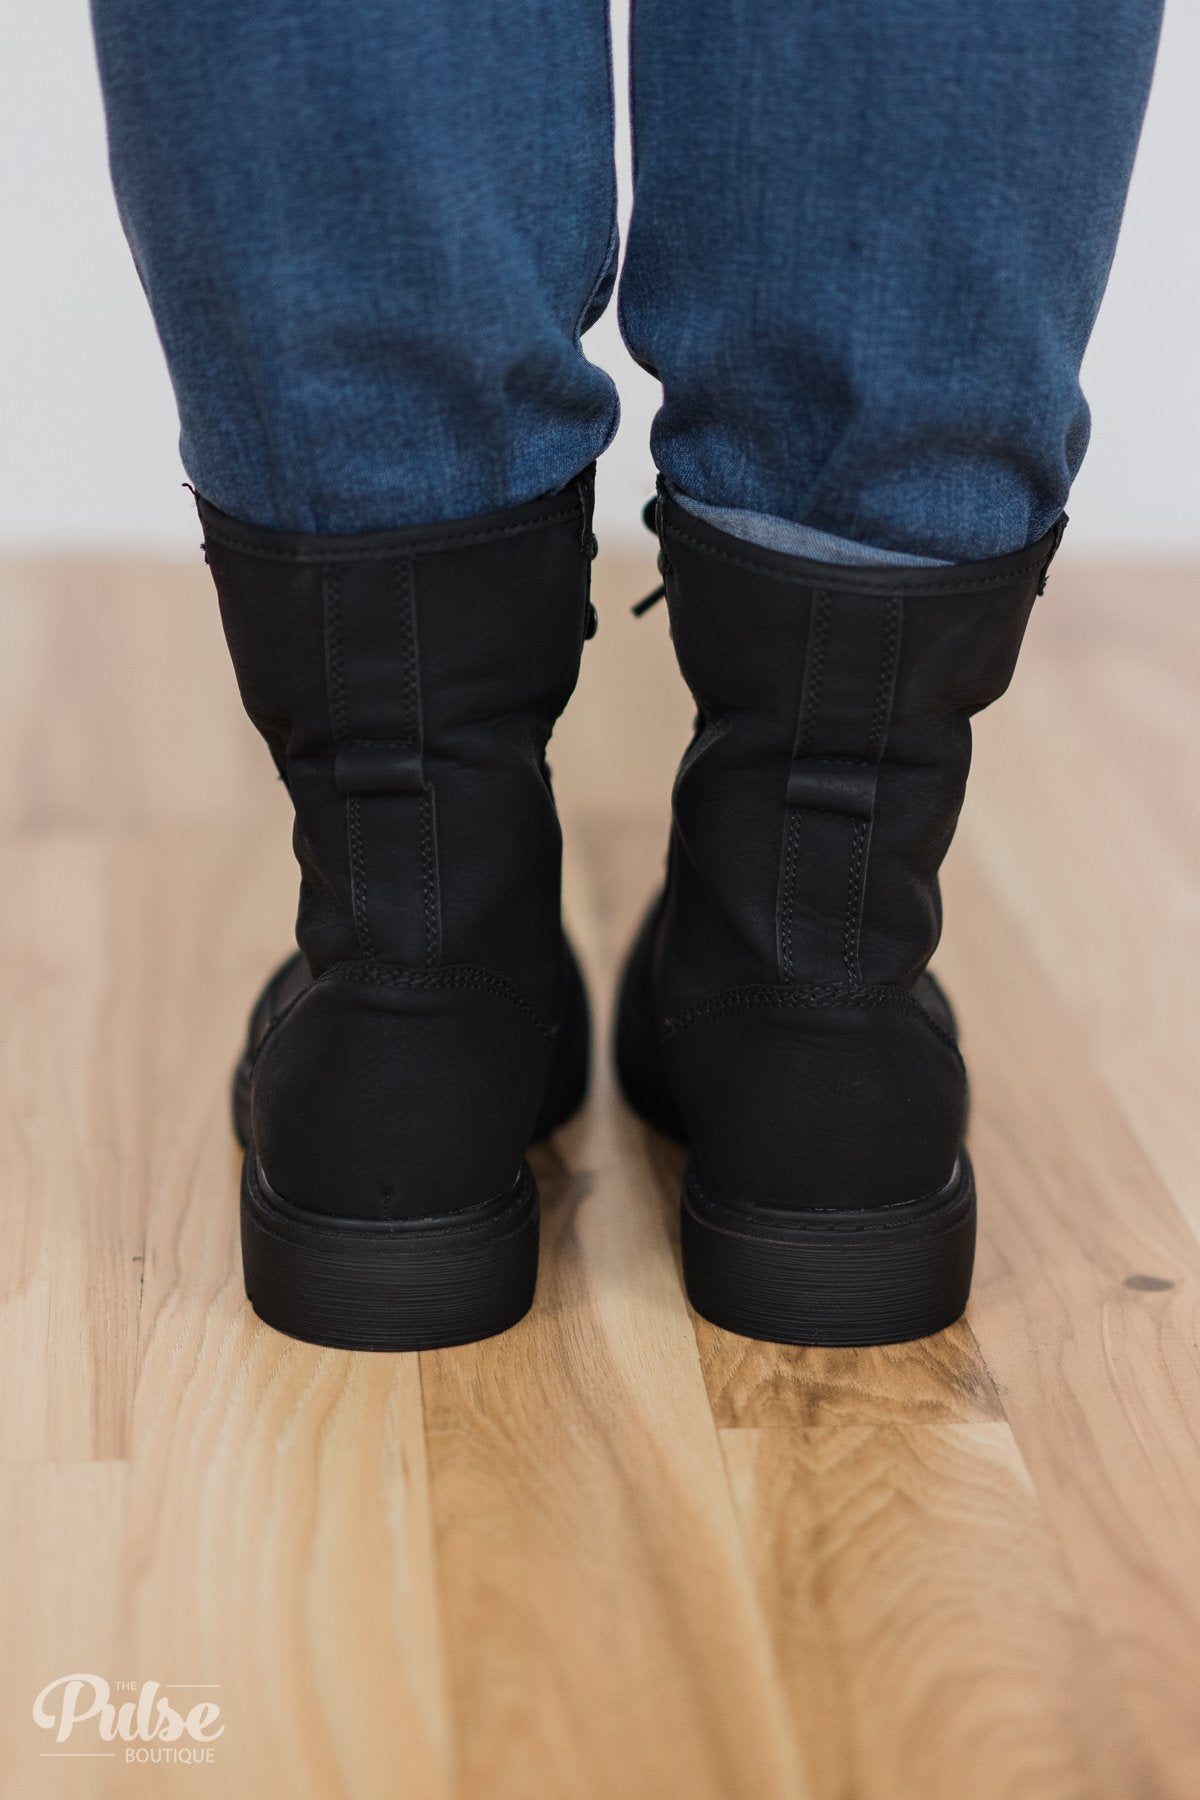 Very G Colonel Sanders Boots- Black